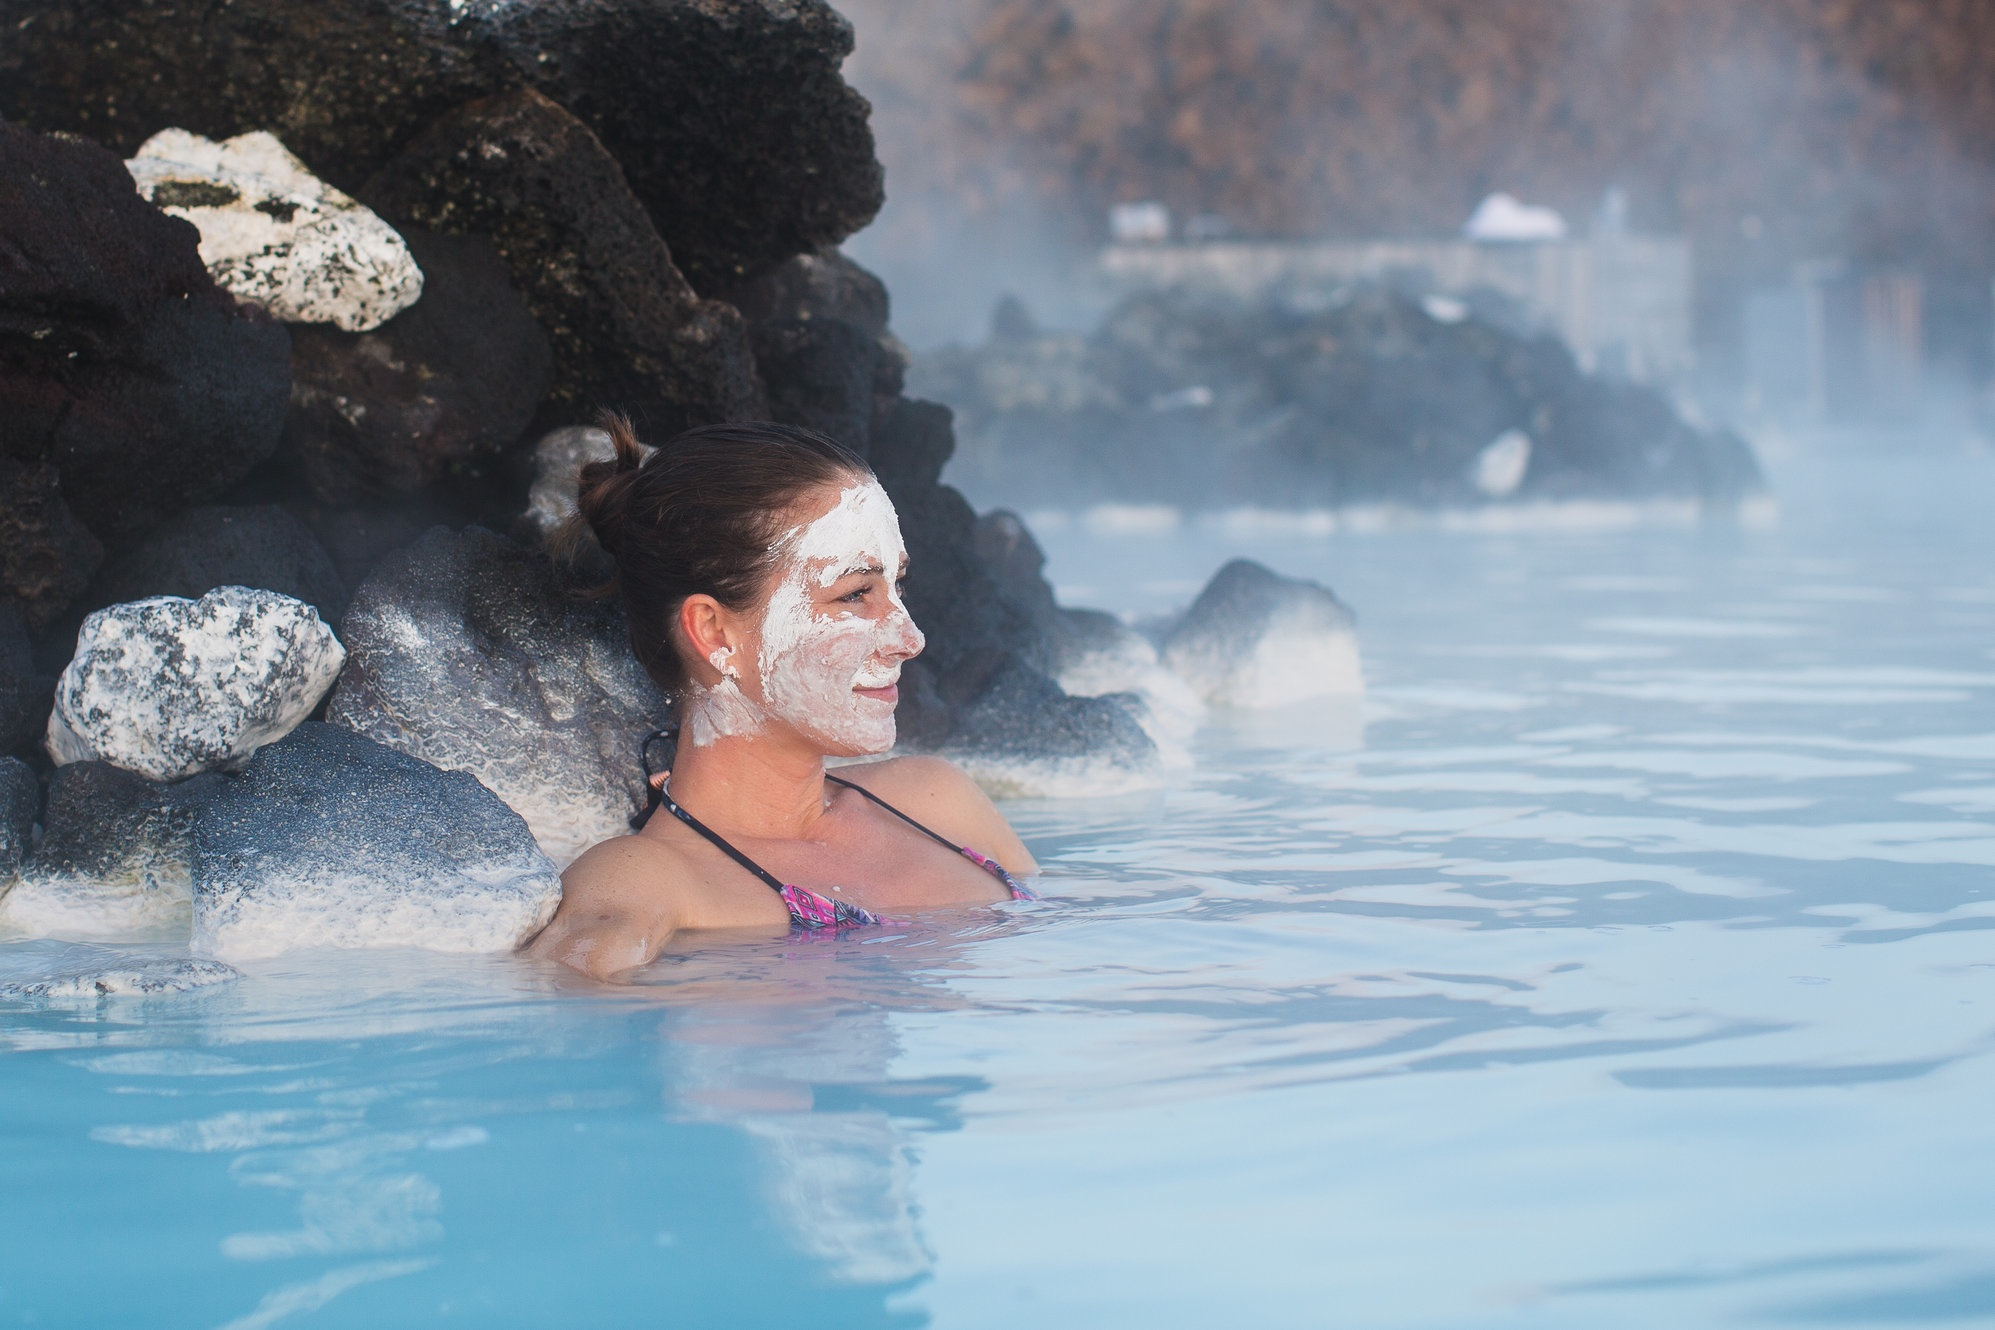 4 Day Northern Lights Winter Vacation Package with the Golden Circle, South Coast & Blue Lagoon - day 1